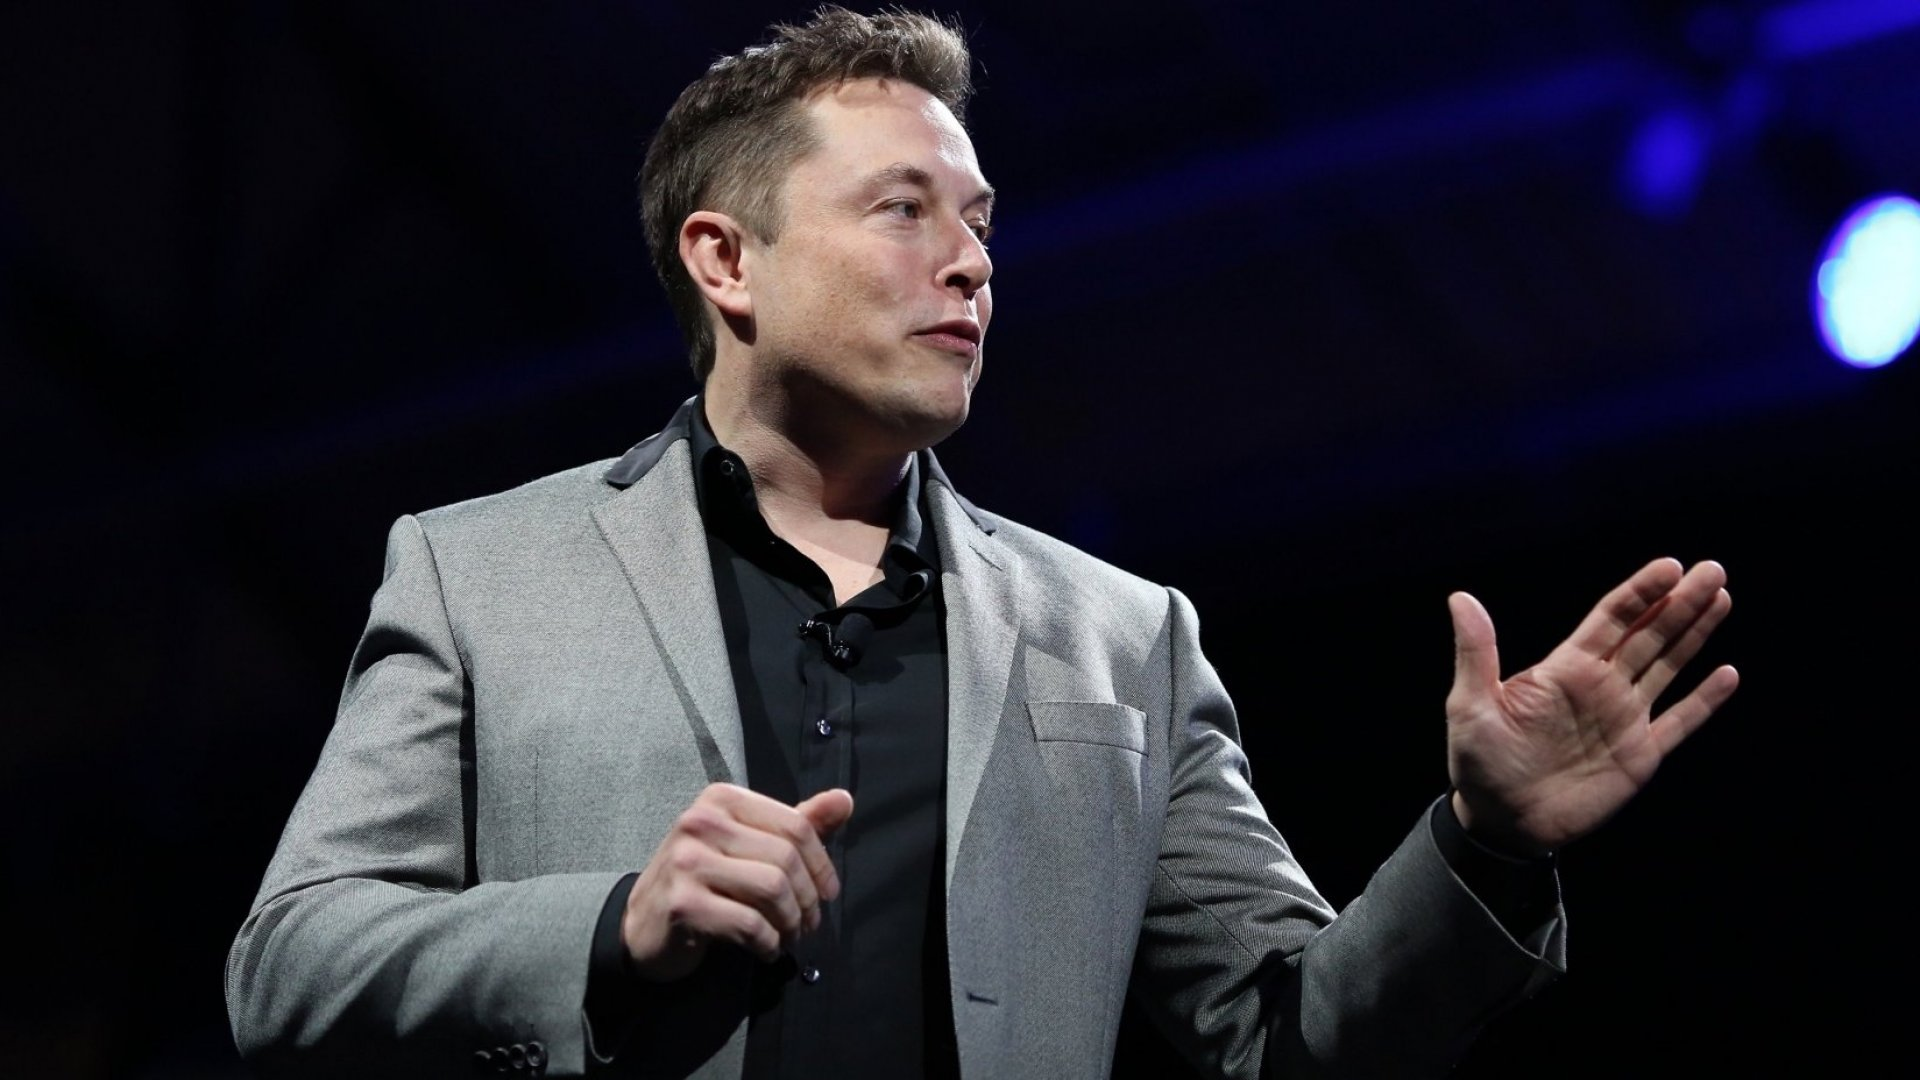 Elon Musk SpaceX says it received over half a million pre-orders for Starlink broadband